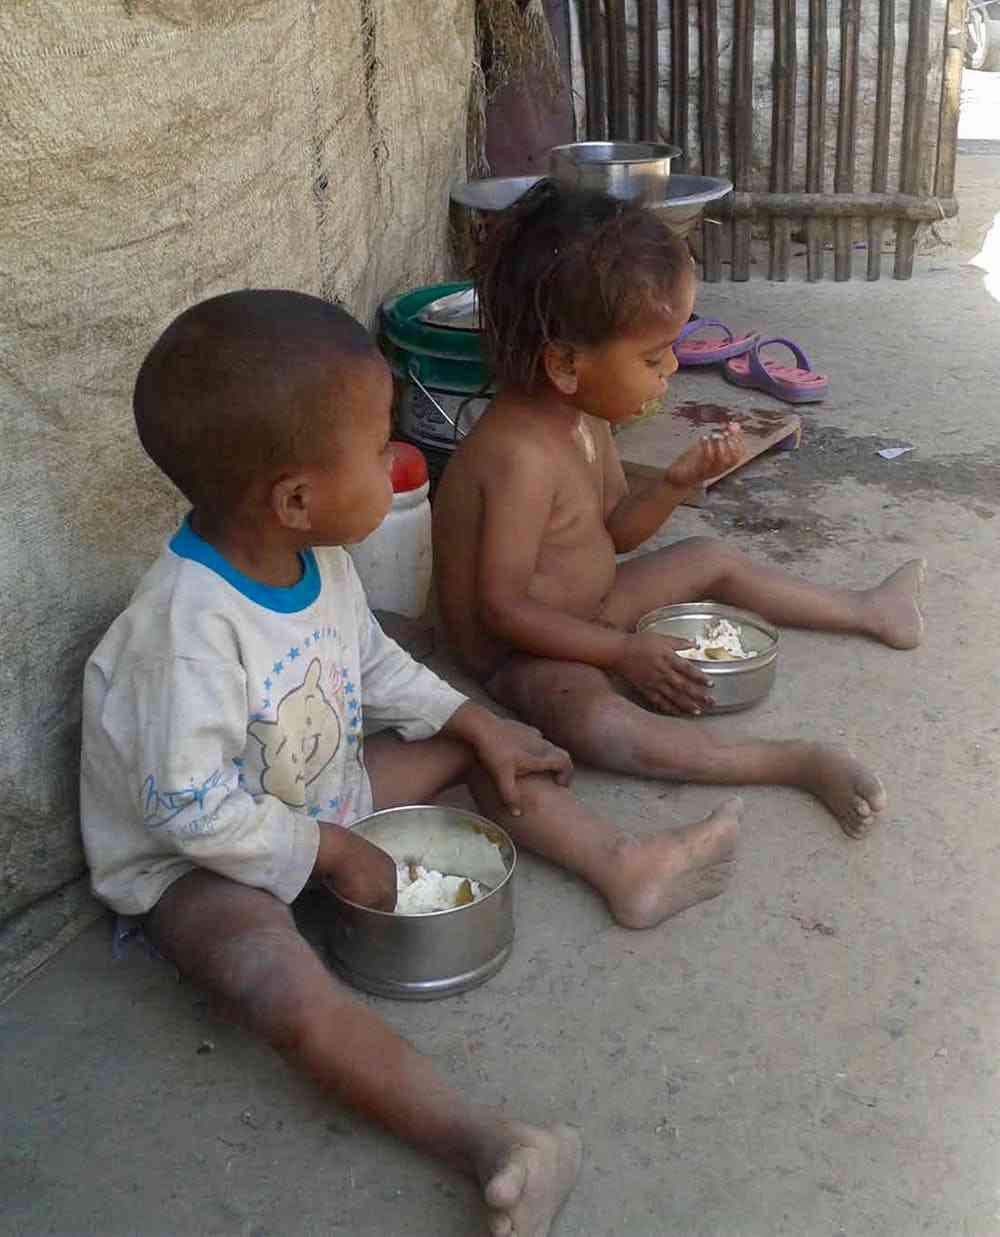 Many Indian children are growing up in very disadvantaged circumstances. These children live in Mahmudi Chak slum next to Rajendra Nagar Railway Junction in Patna. Photo credit: Sujeet Kumar